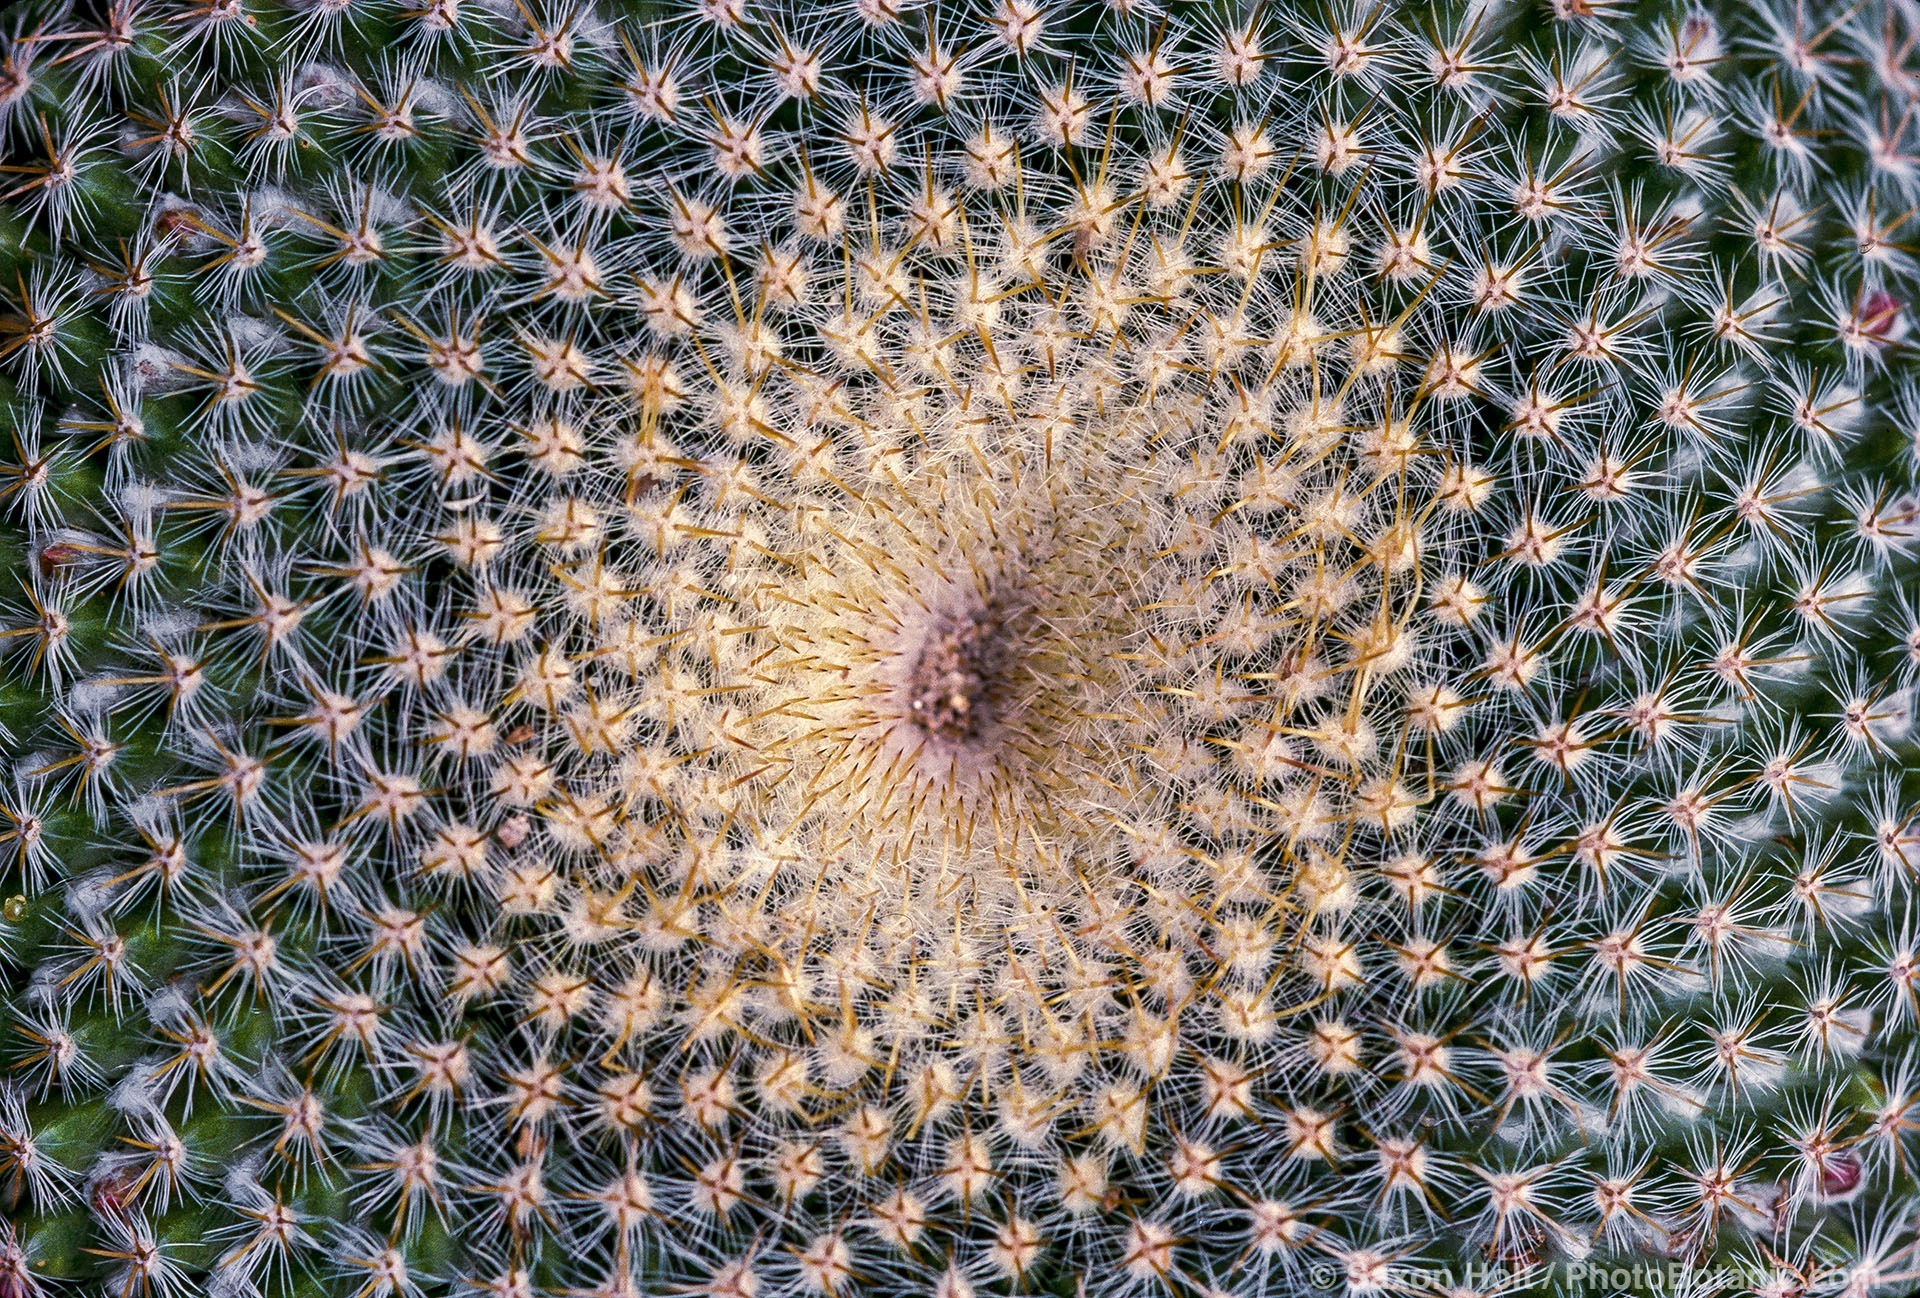 Mammillaria celsiana cactus with spiral growth pattern